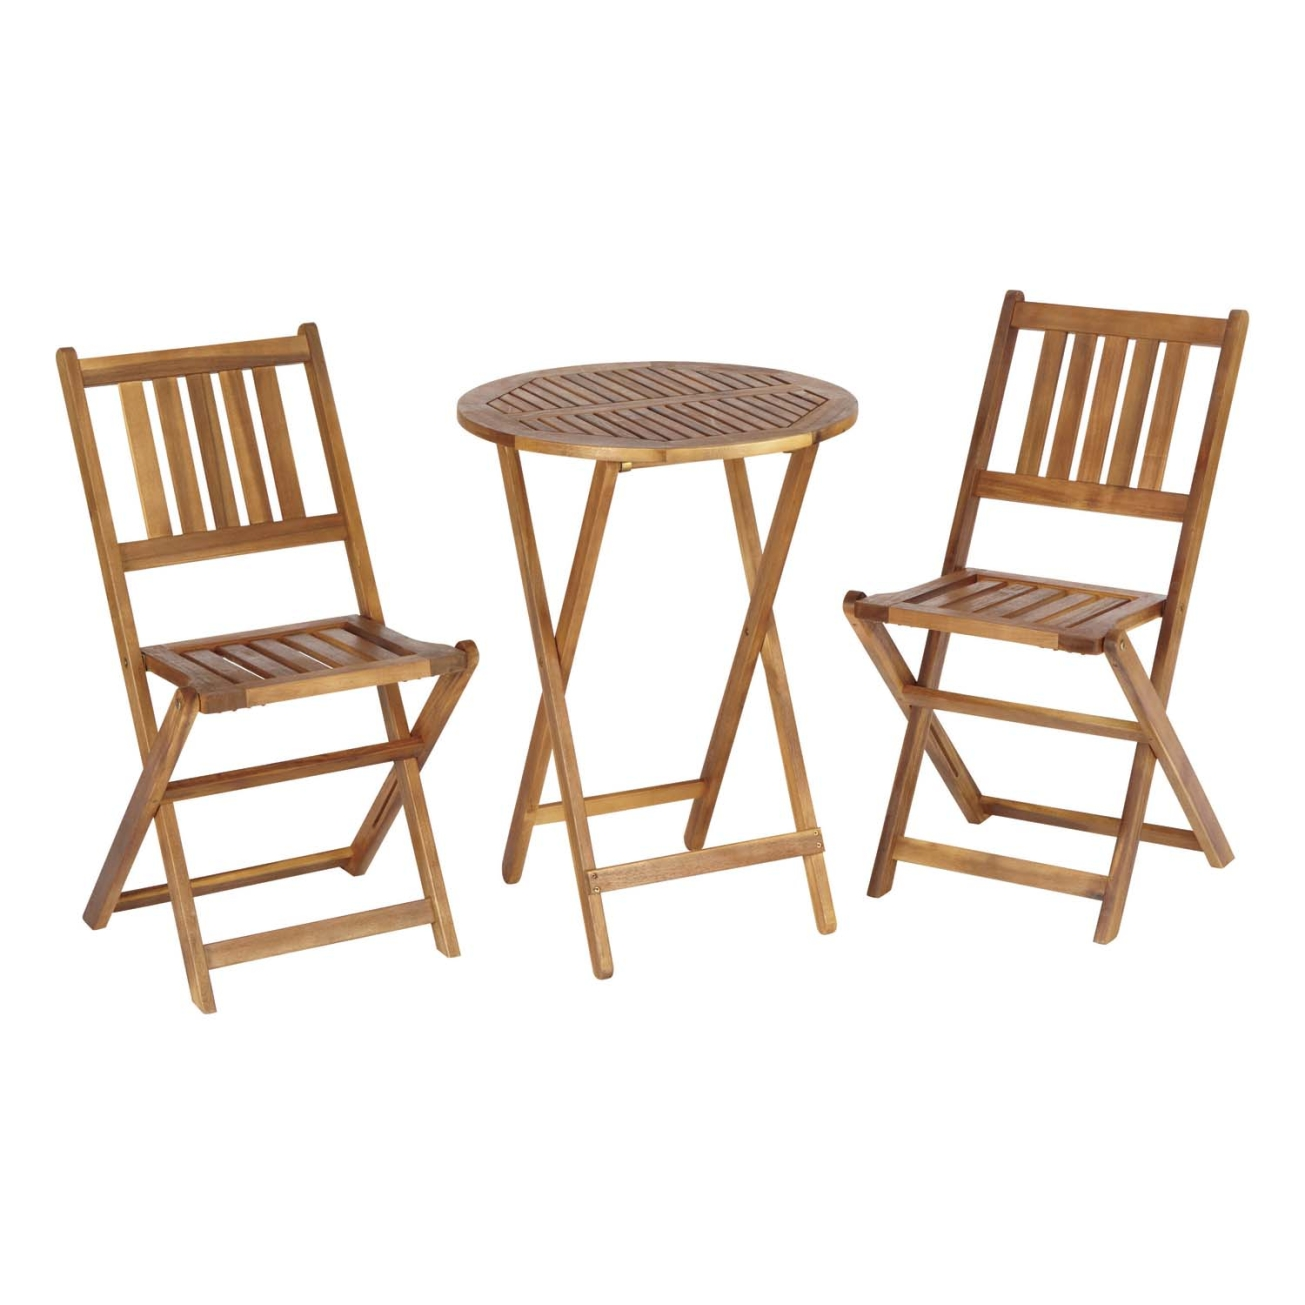 Get a nice spot in your garden or patio by decorating an for Table and chair set